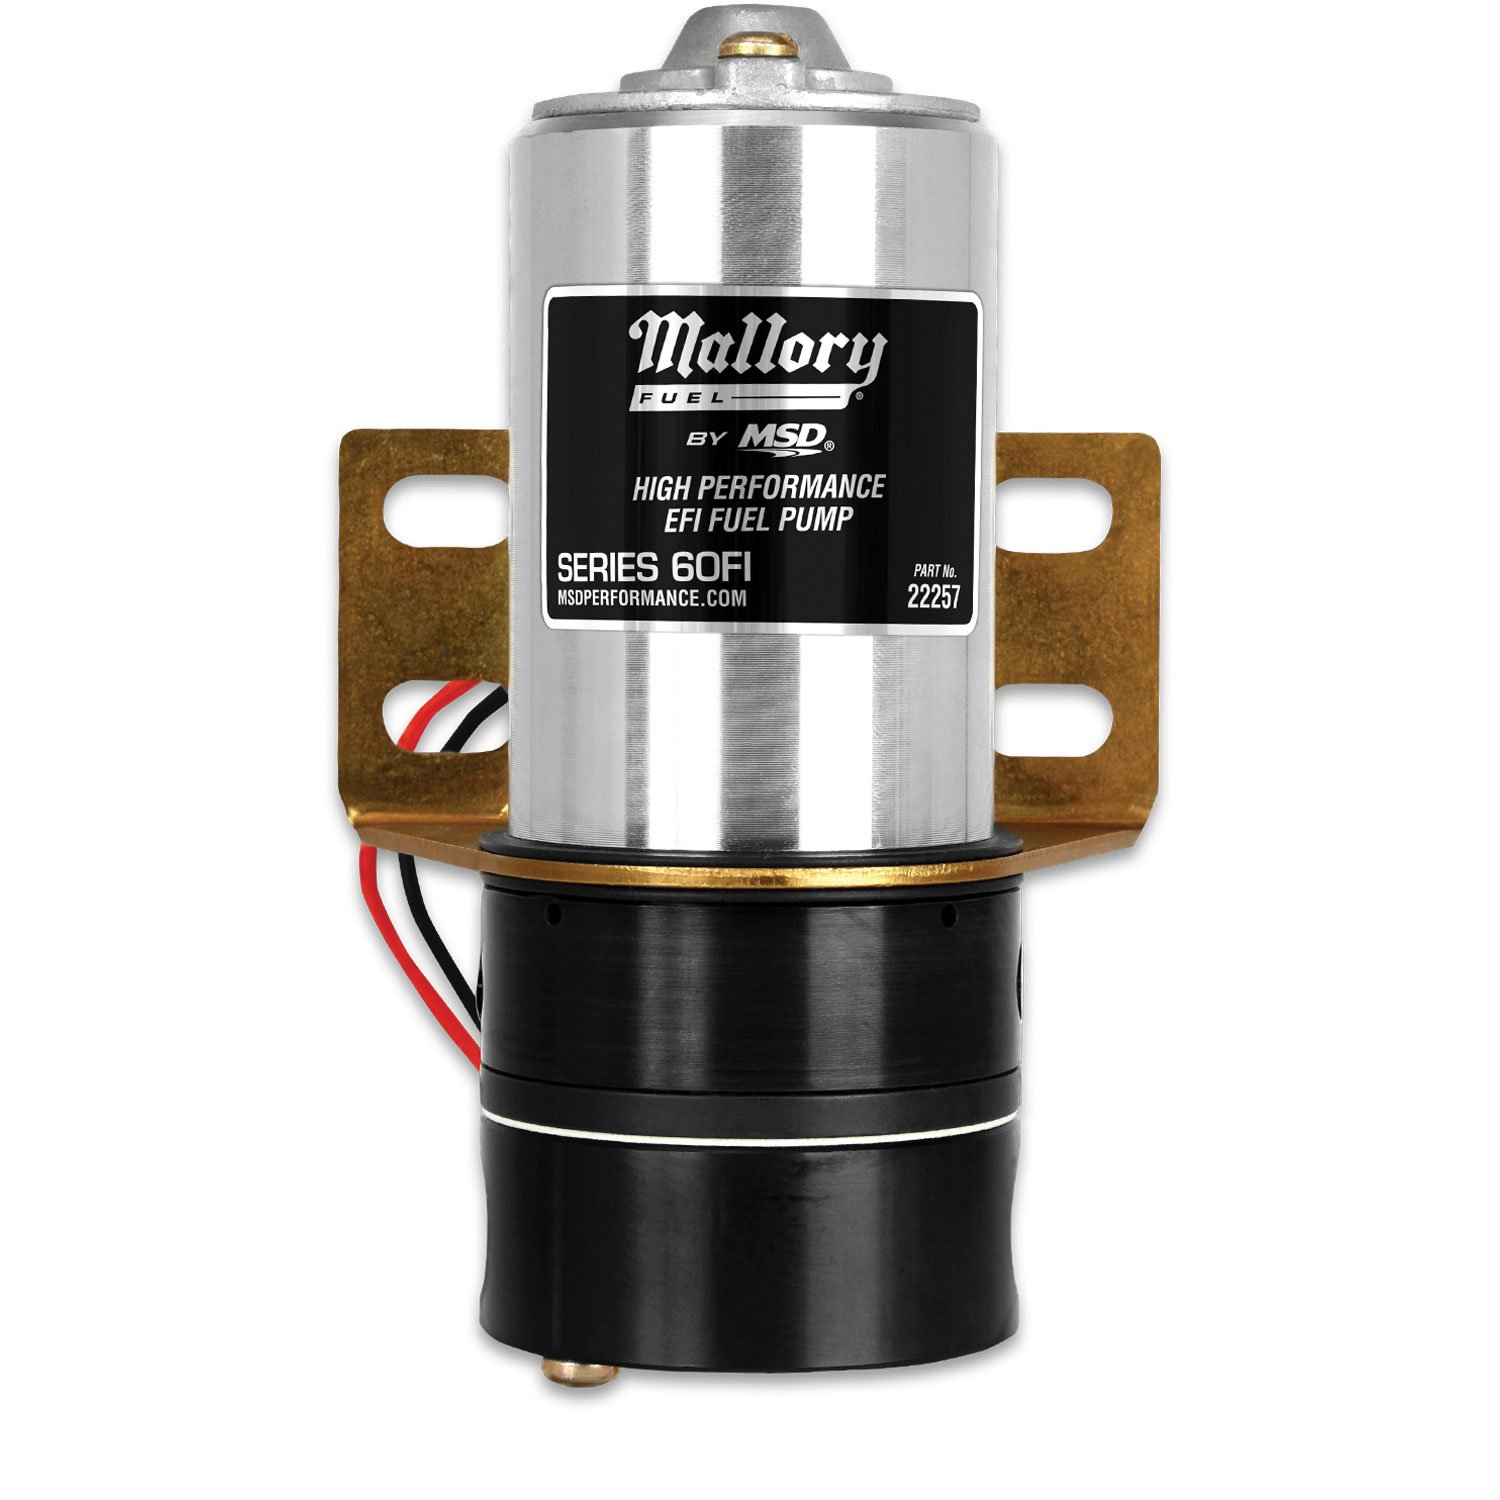 fuel pumps regulators and filters msd performance products mallory 60fi fuel pump